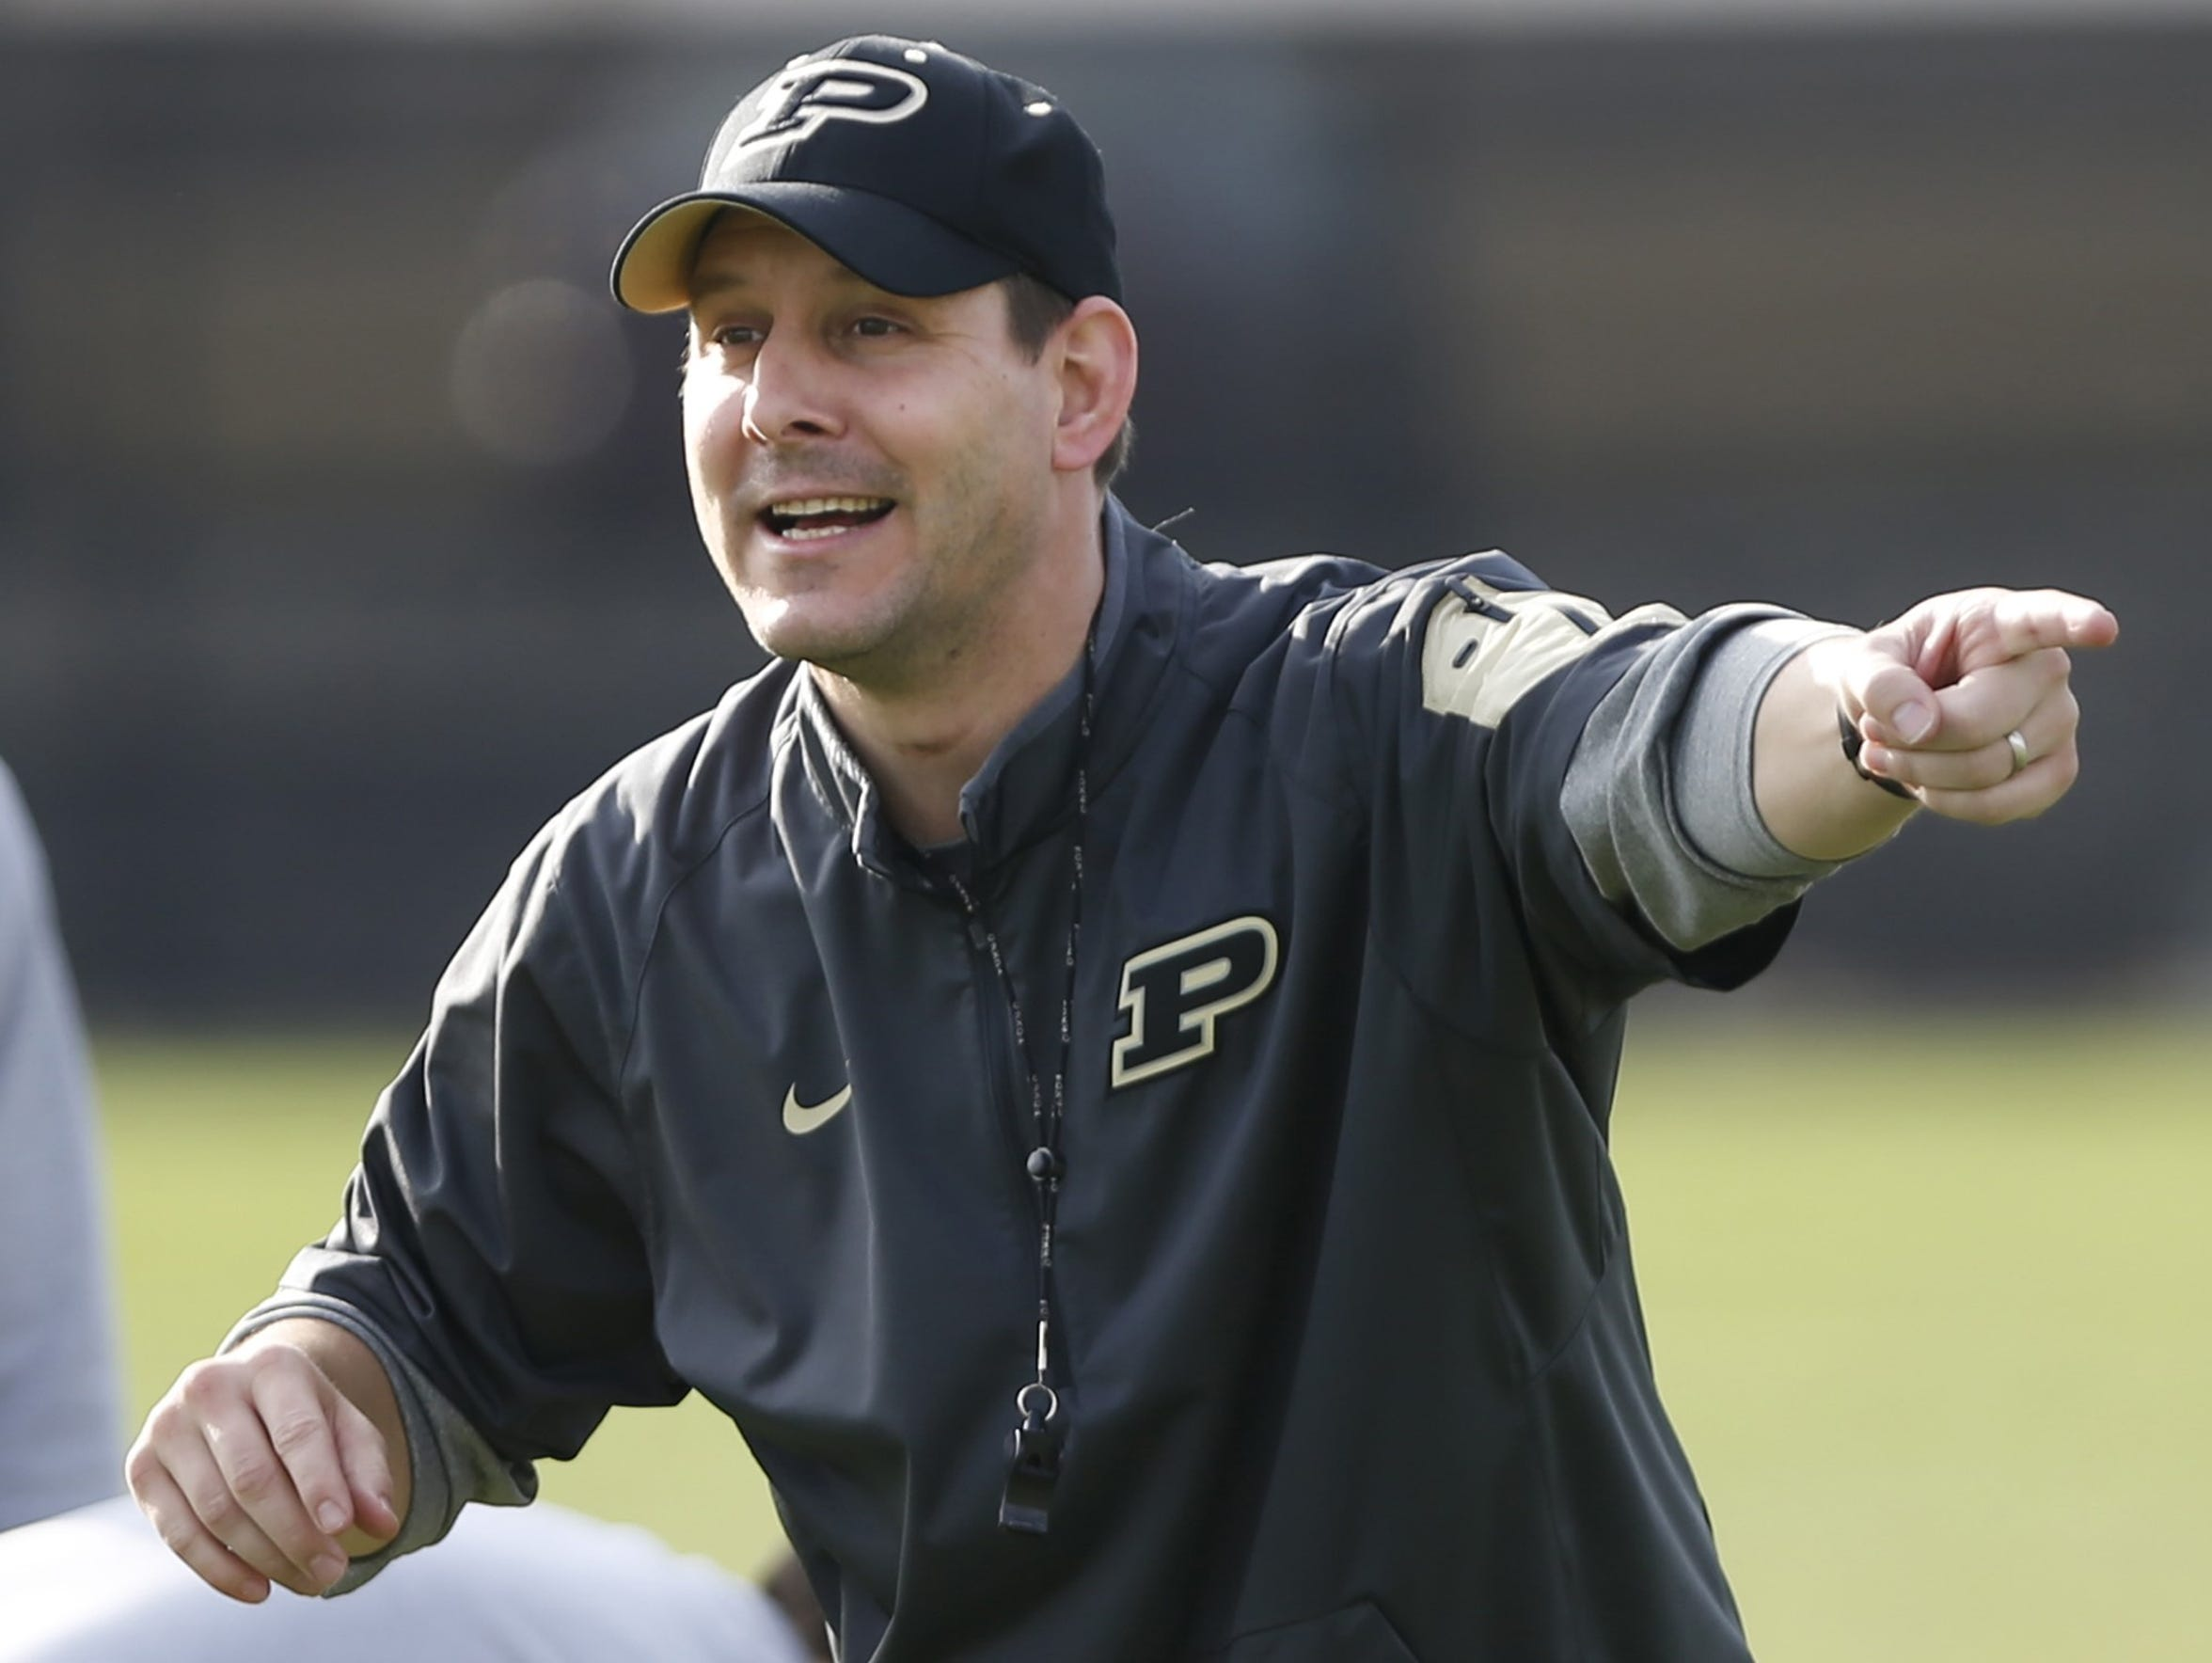 Tim Lester was the quarterbacks coach at Purdue during